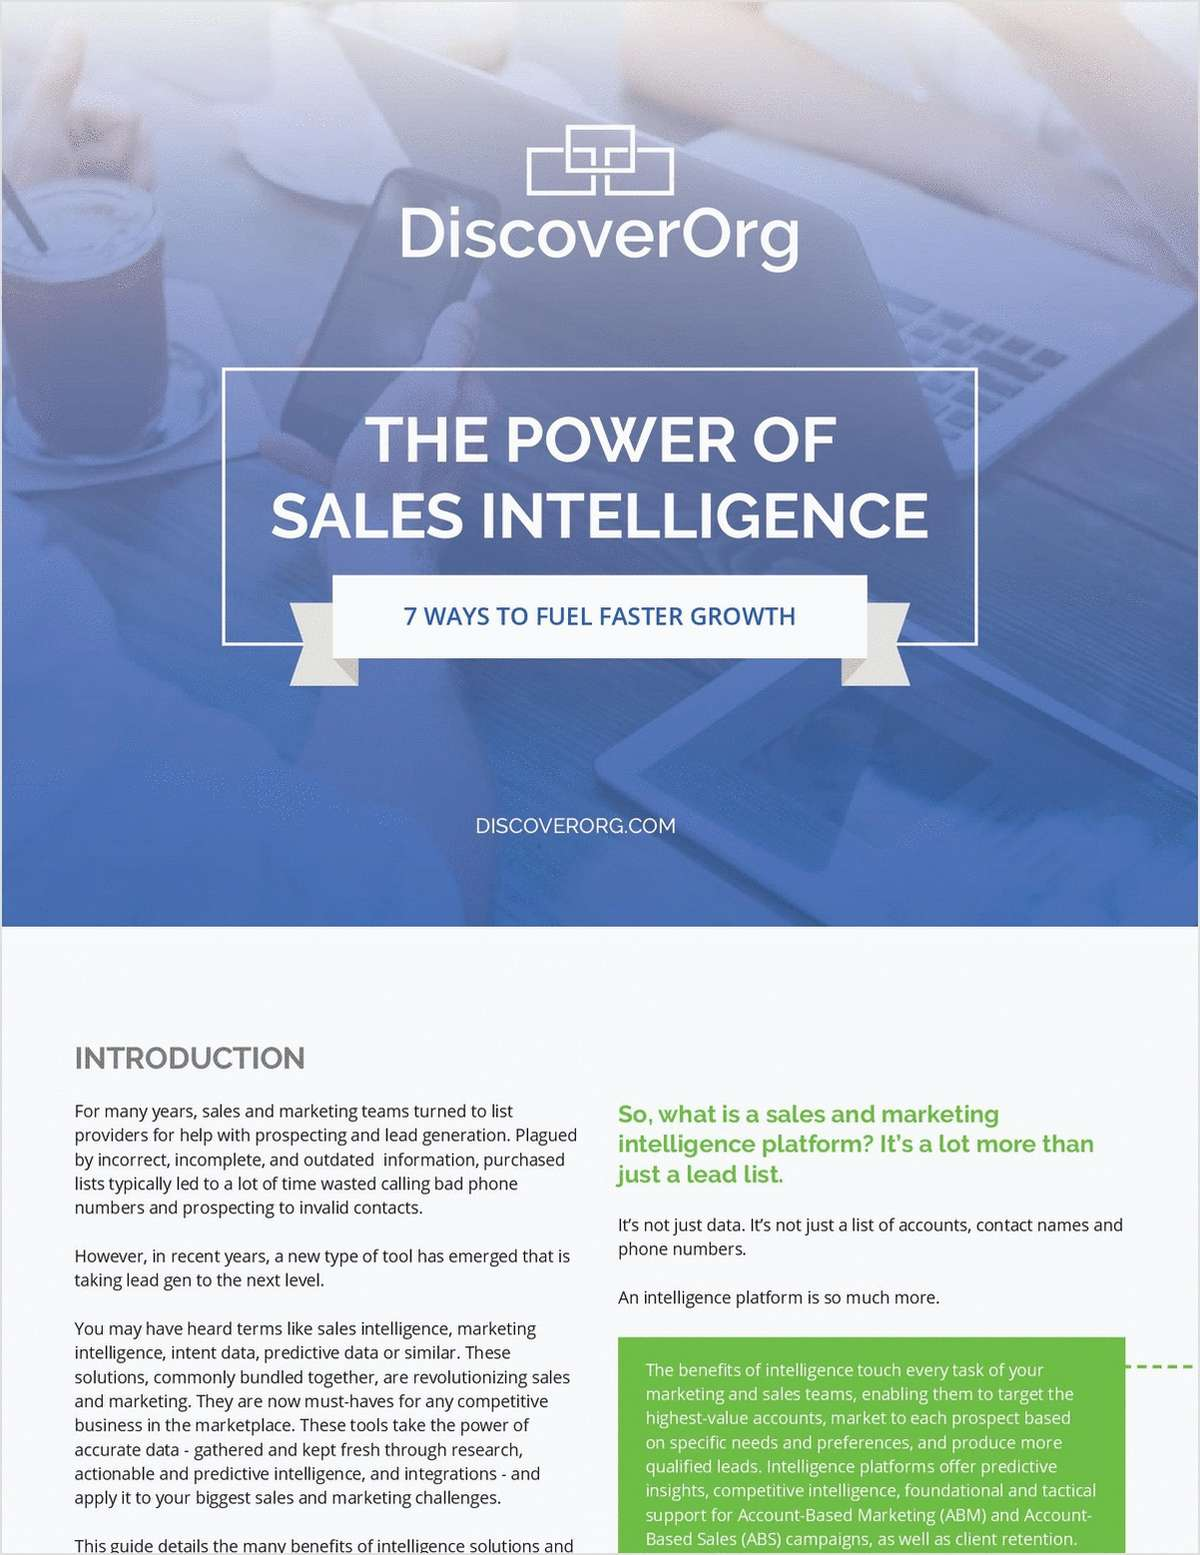 The Power of Sales Intelligence: 7 Ways to Fuel Faster Growth